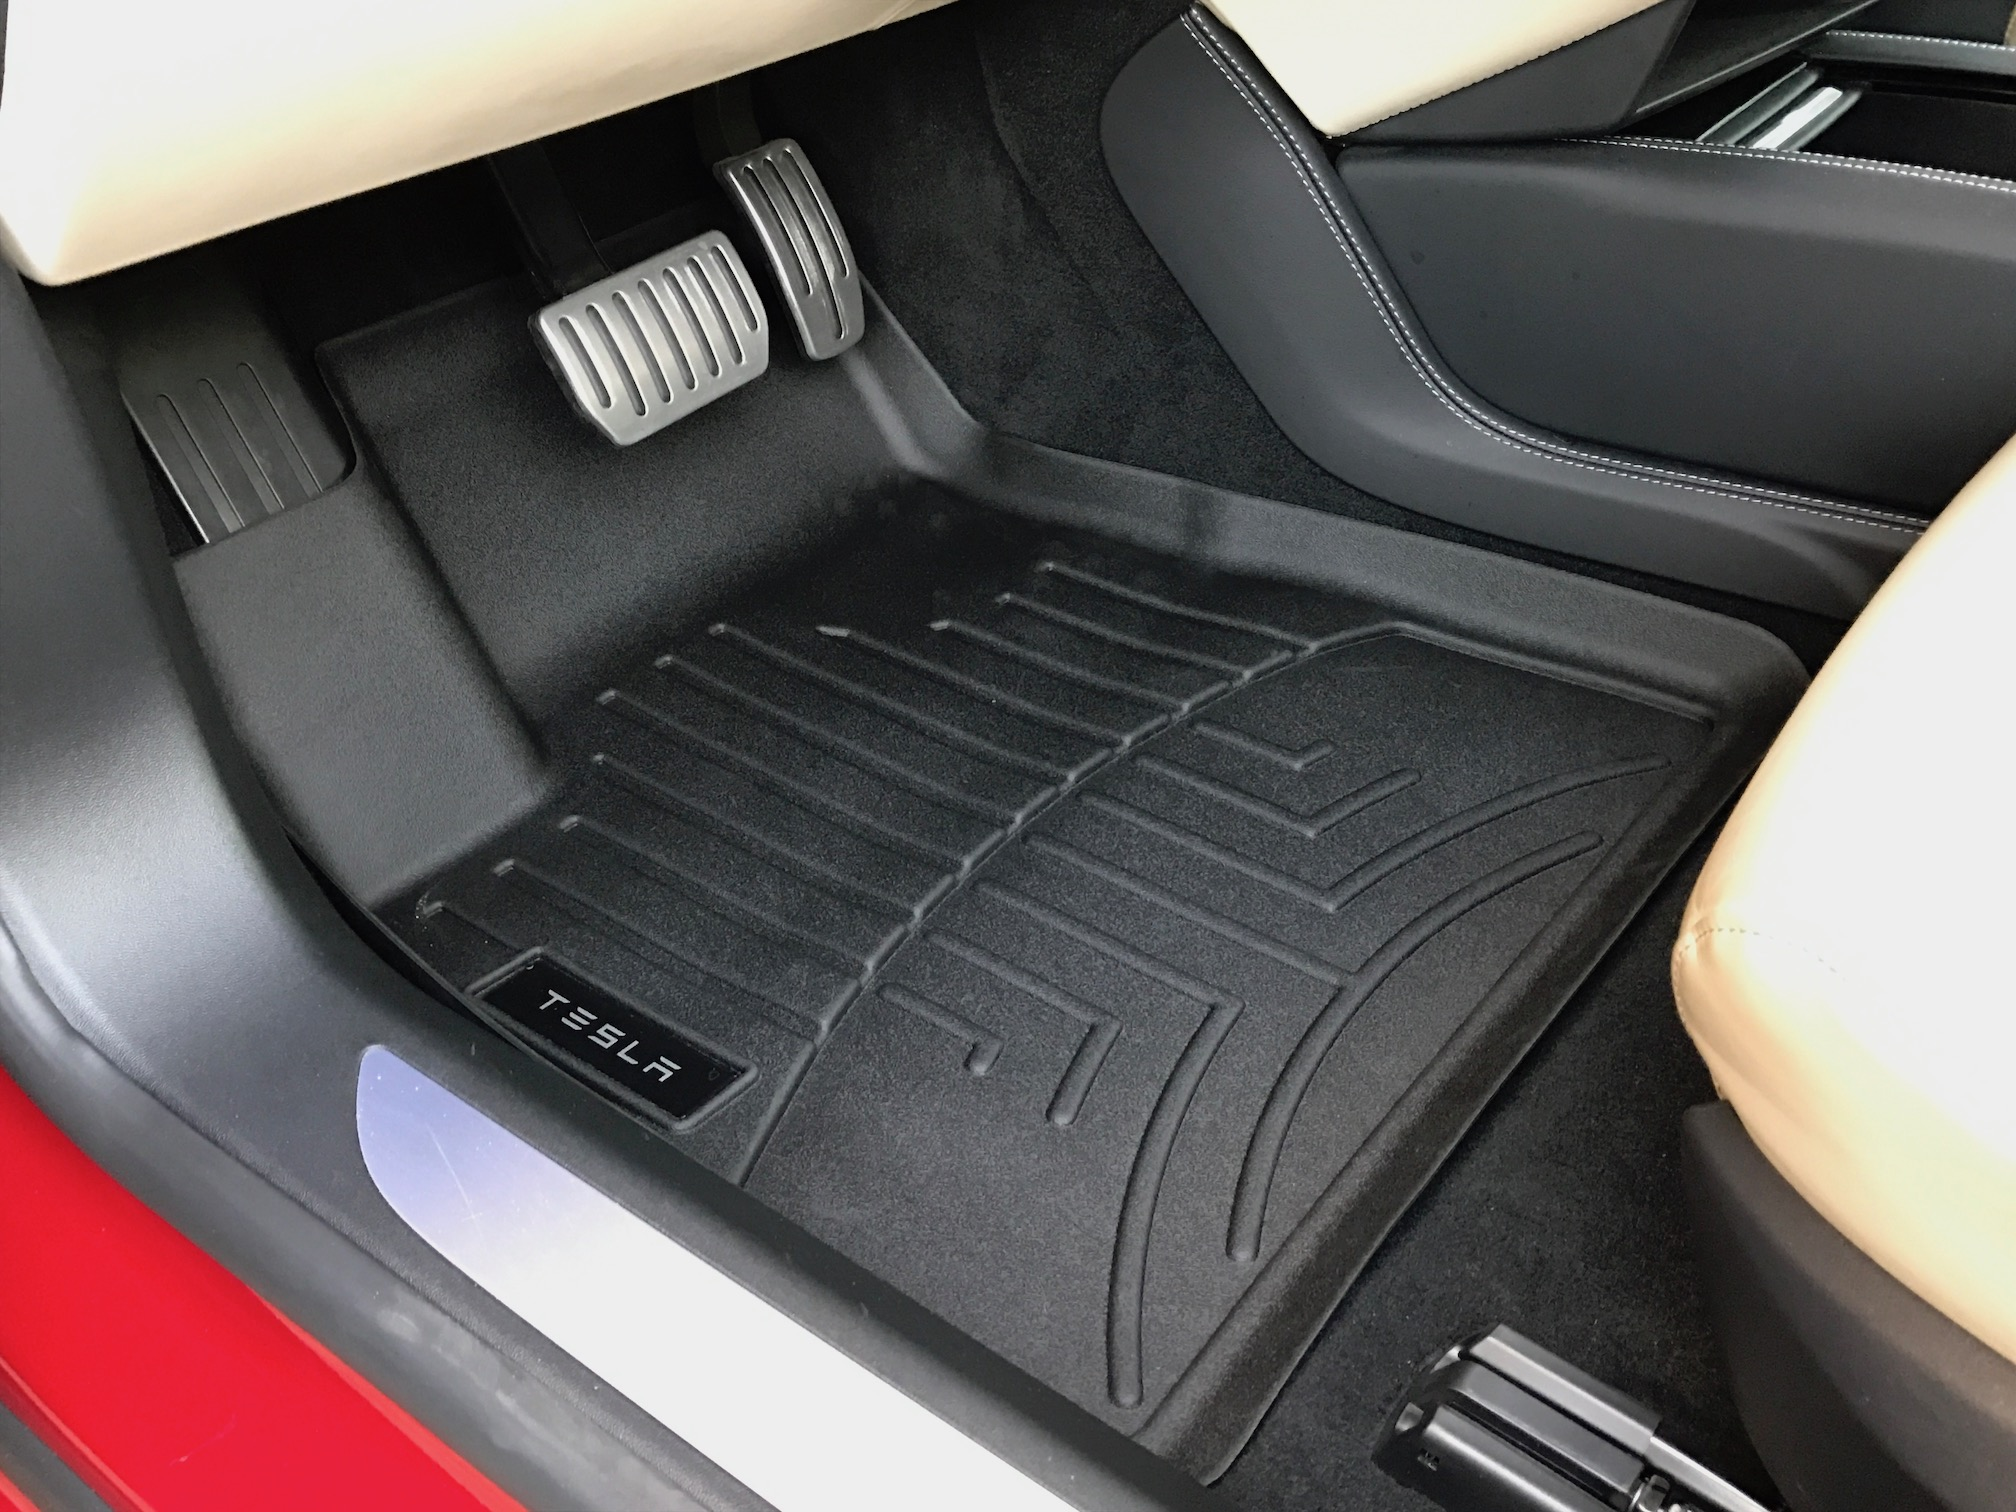 Driver side floor liner mat (Installed)